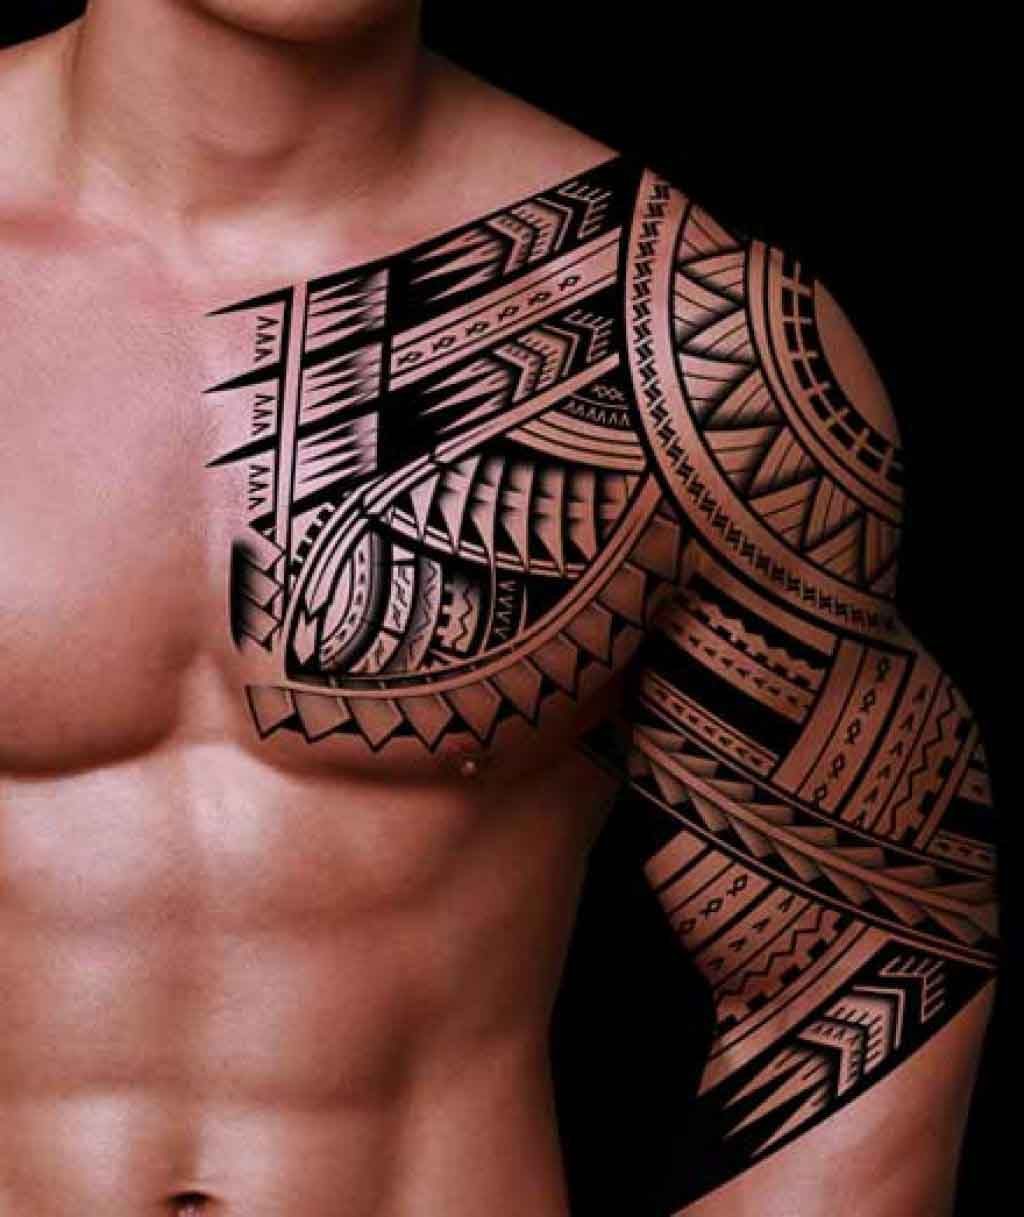 6eb6839e4 These Symbolic Tribal Tattoos Are The way To Go | LivingHours